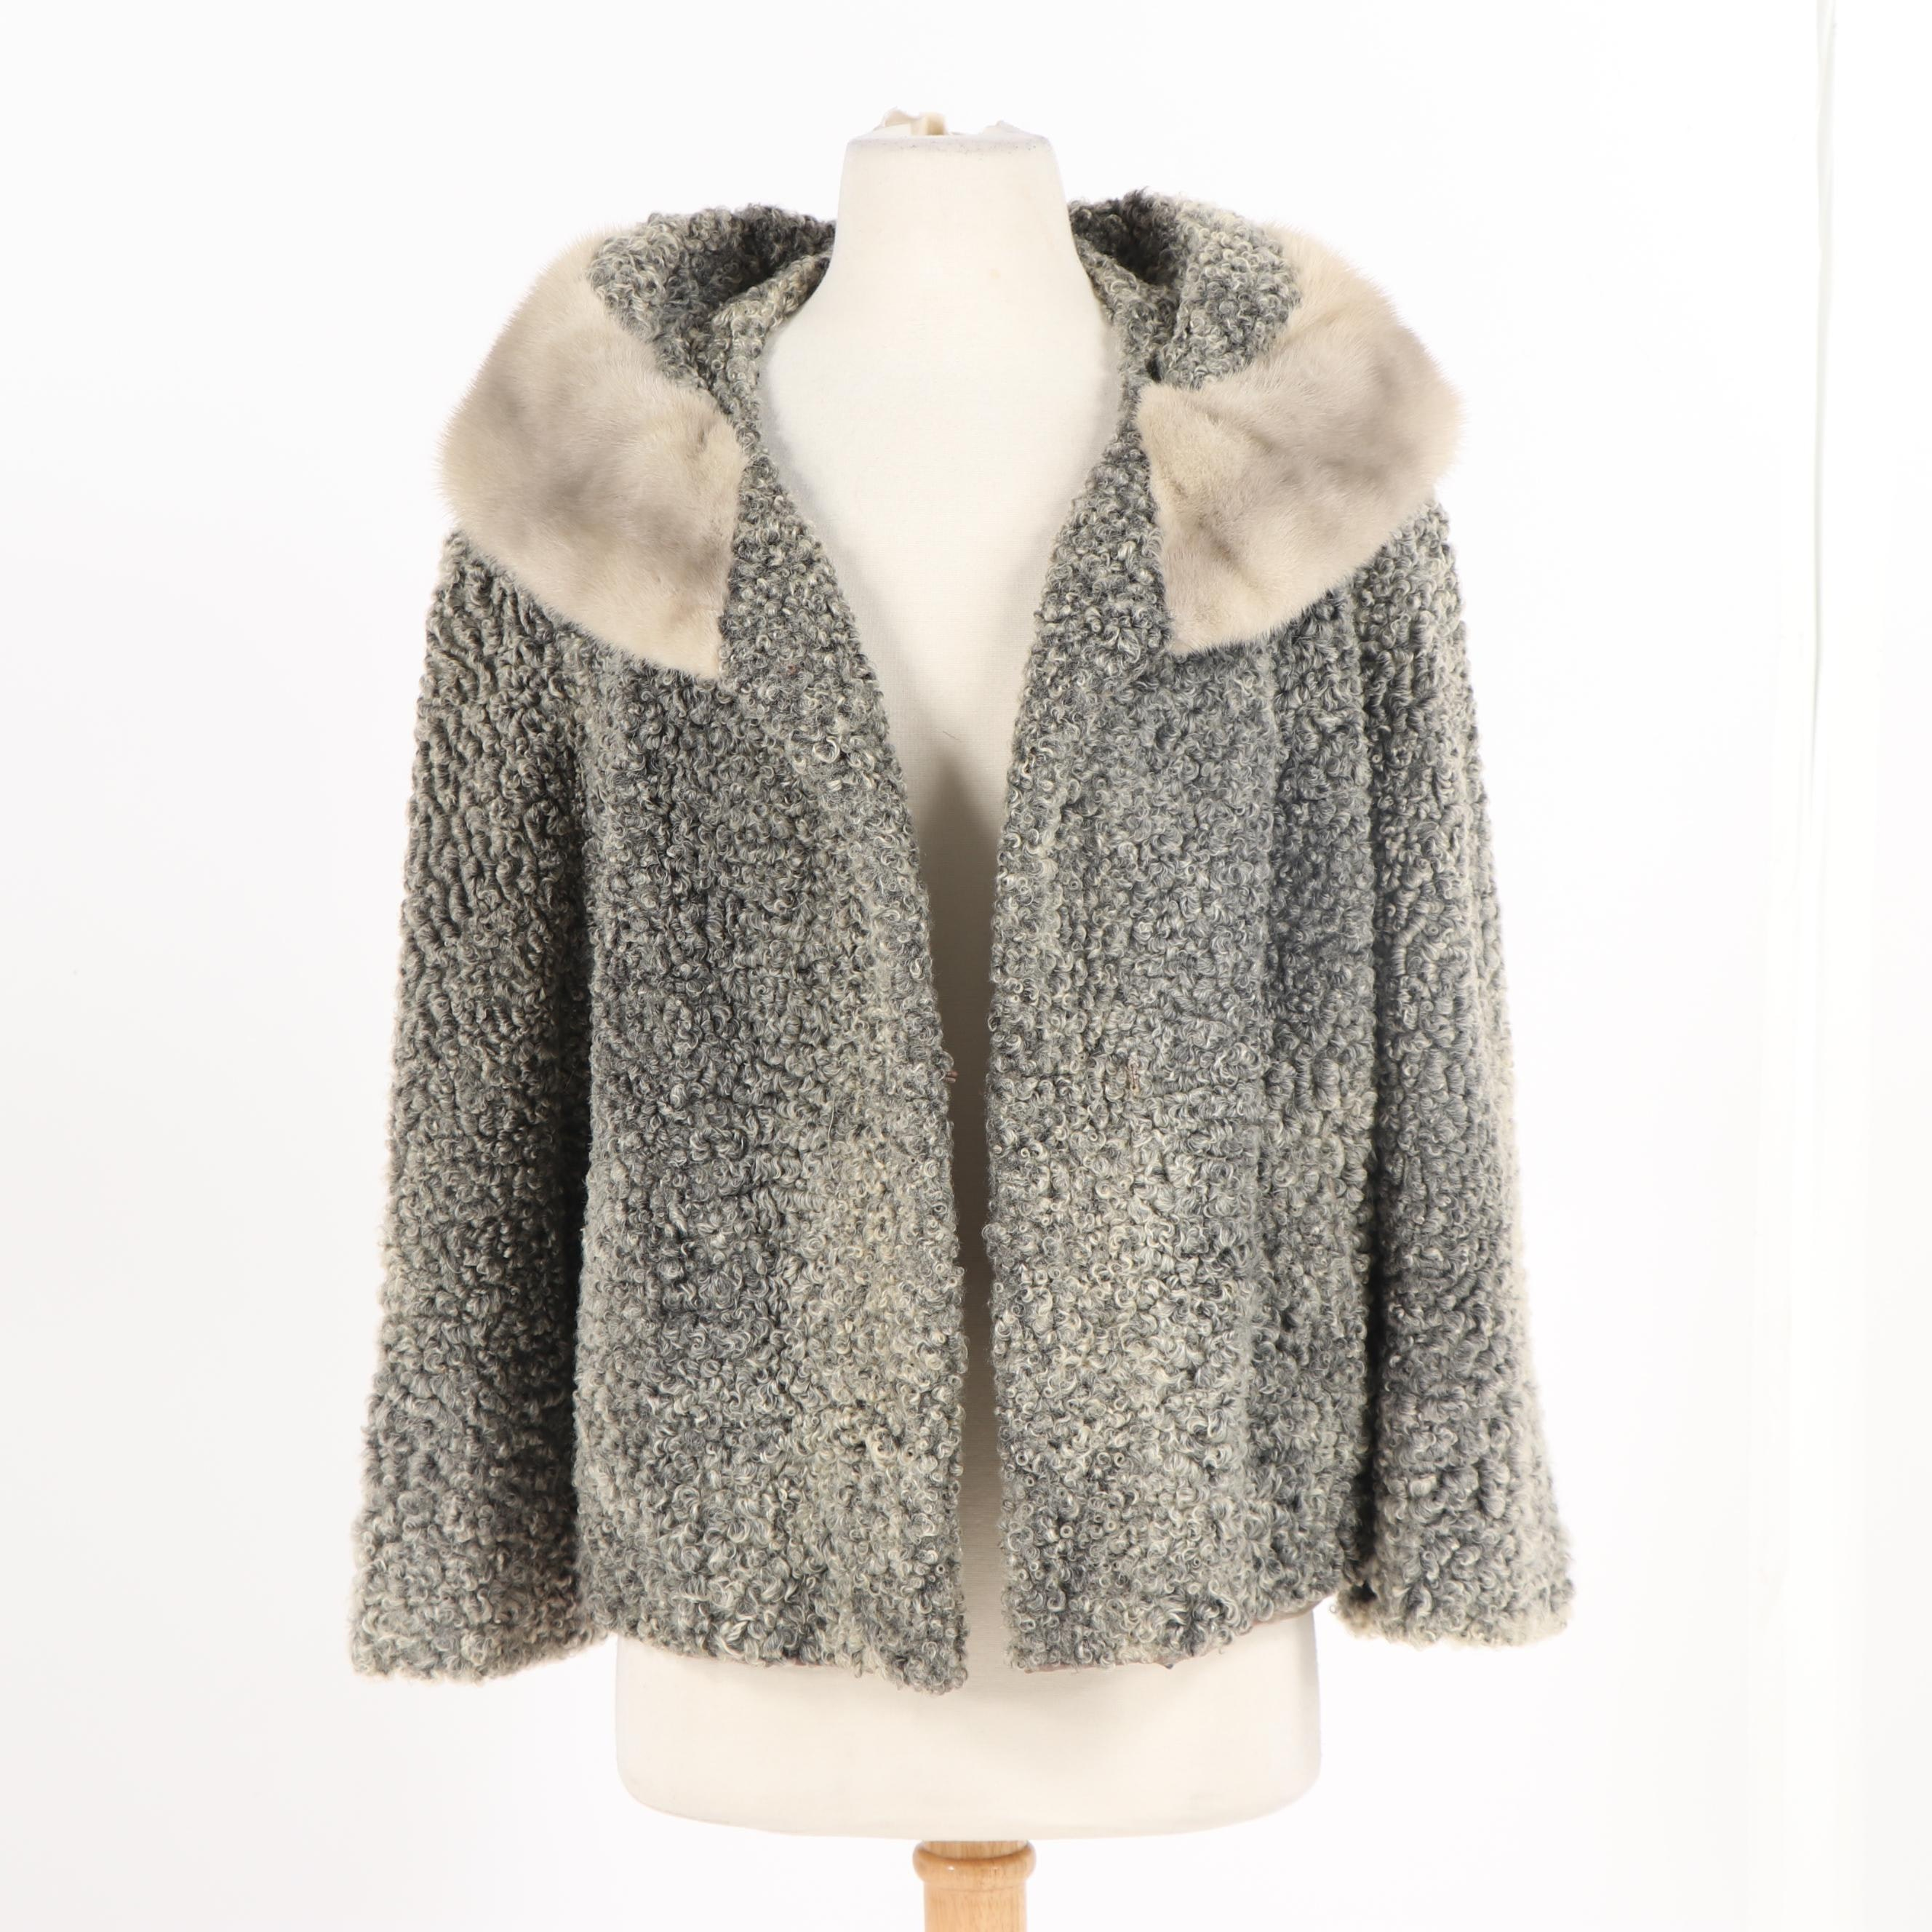 Macy's Fur Salon Grey Persian Lamb Fur Jacket with Mink Fur Collar, Vintage